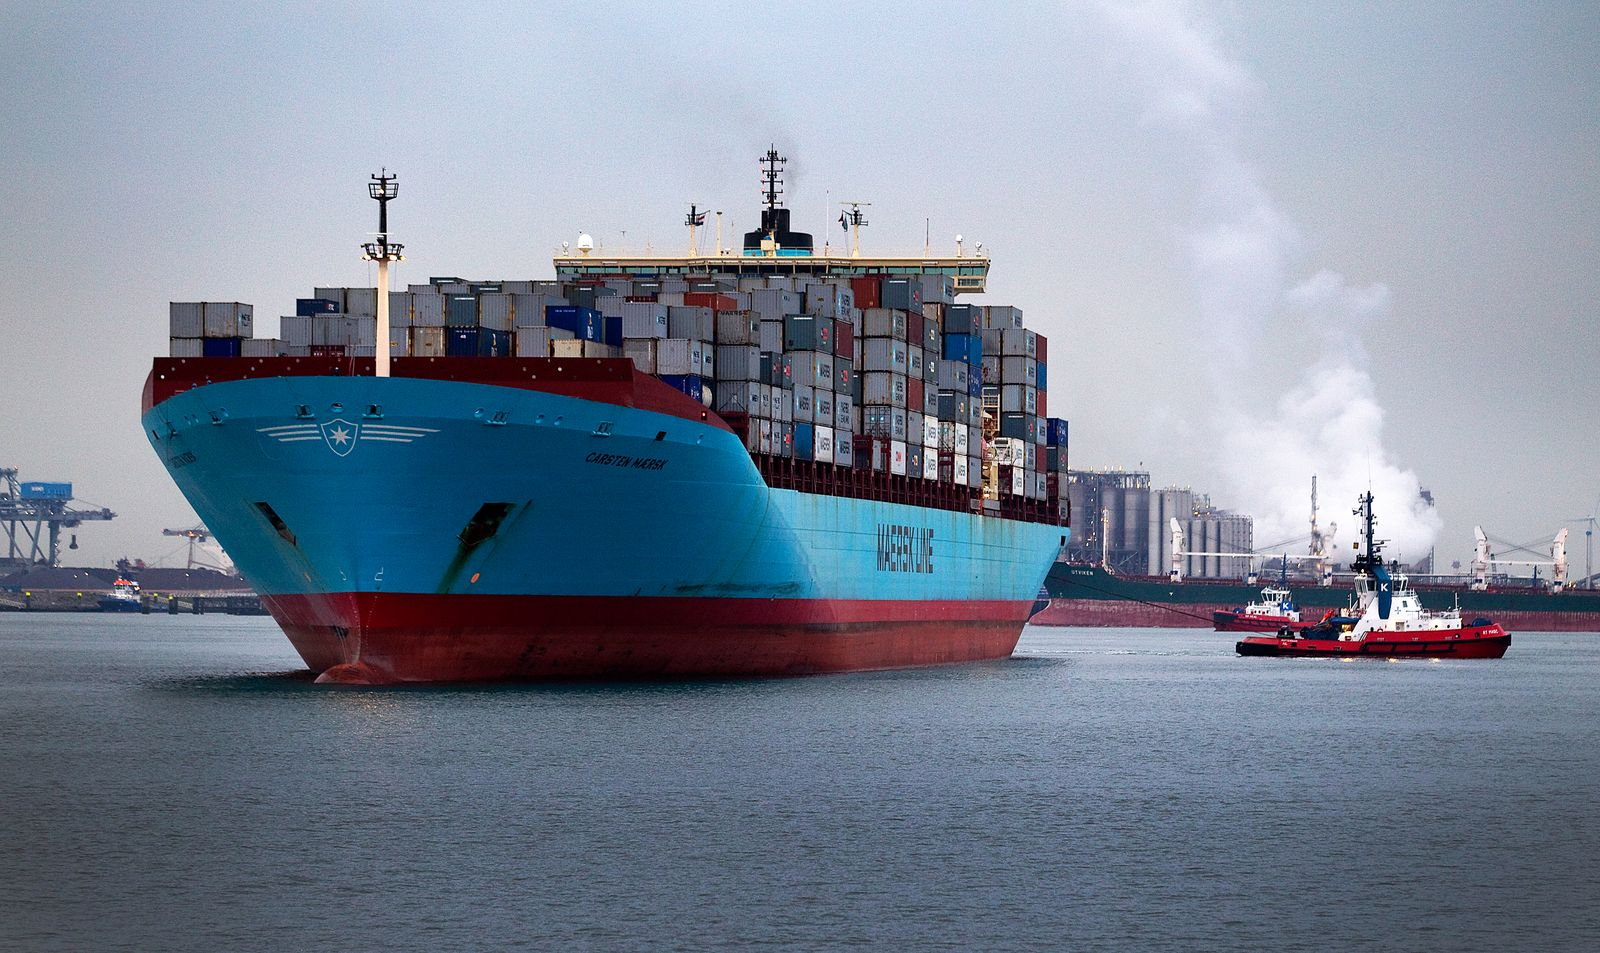 The Carsten Maersk, the first container ship to sail from Japan to Rotterdam since the nuclear disaster at Fukushima enters Europe's largest port, Rotterdam